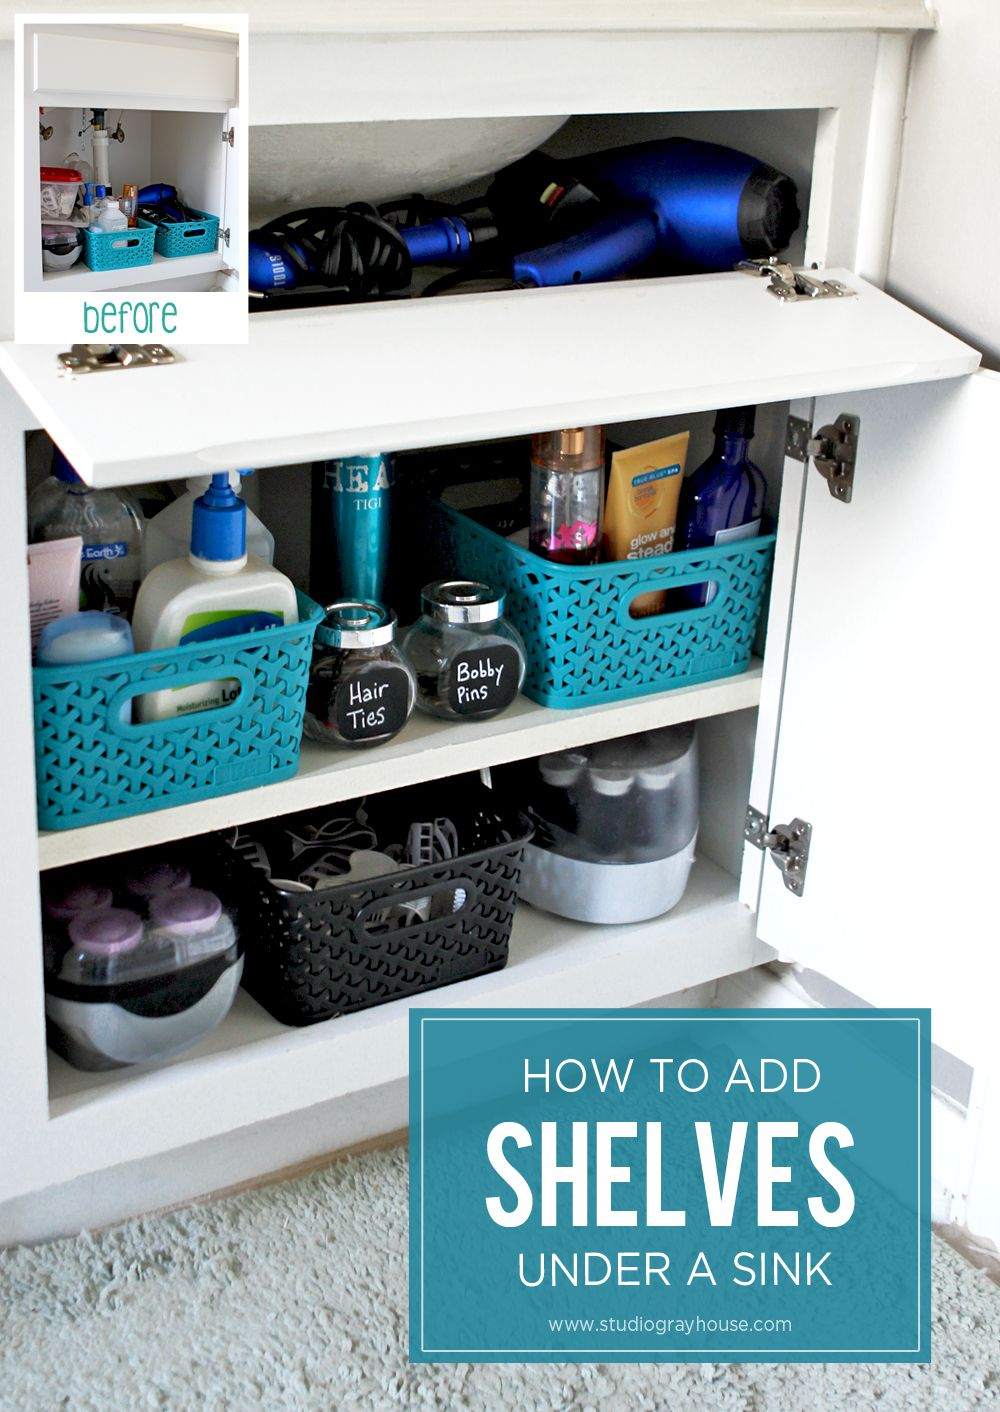 Adding Shelves in Bathroom Cabinets | Pinterest | Bathroom cabinets ...